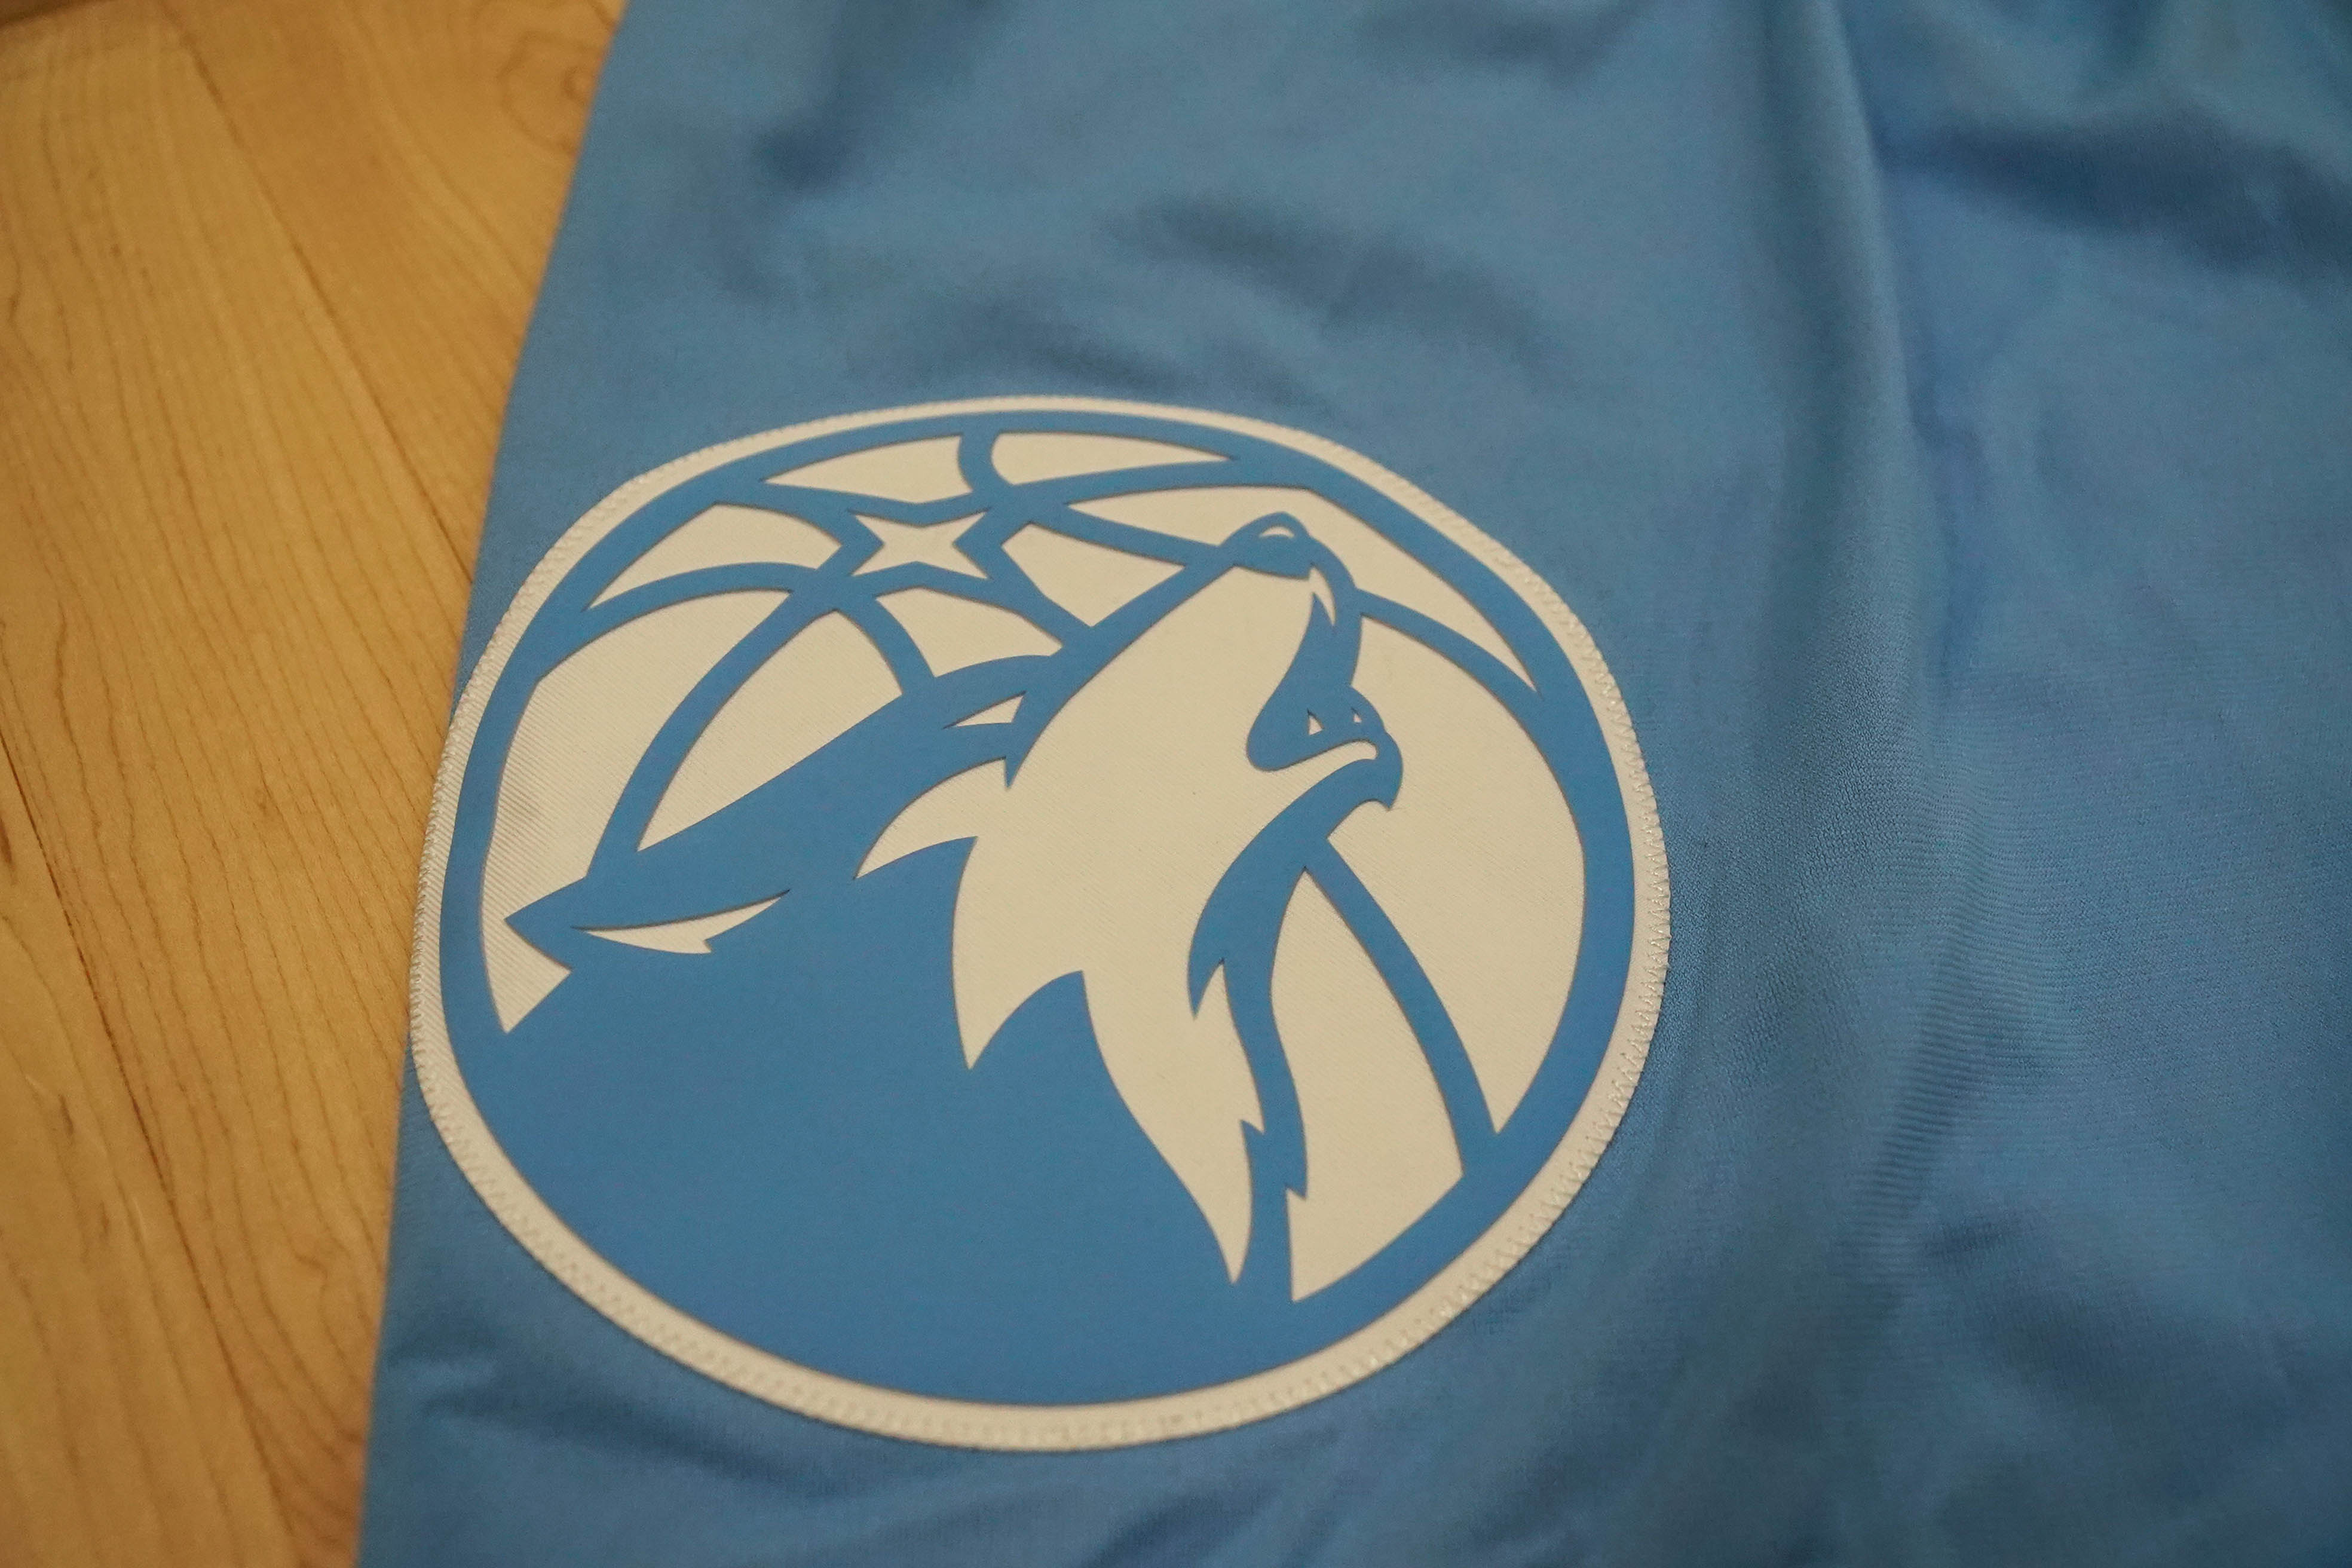 A look at the Timberwolves' 2019-20 City Edition uniforms.